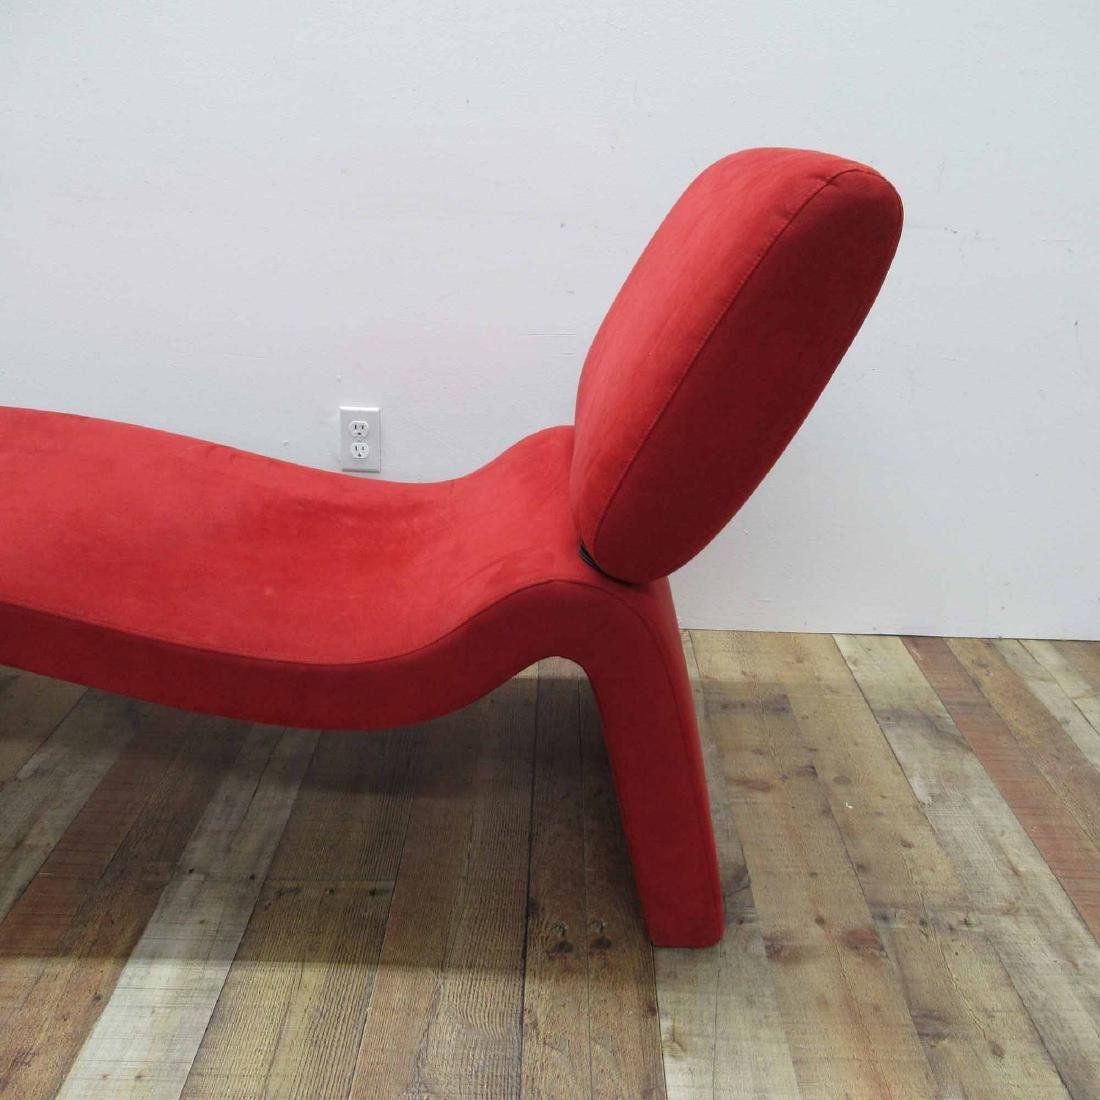 RED SUEDE UPHOLSTERED CHAISE LOUNGE CHAIR - 2